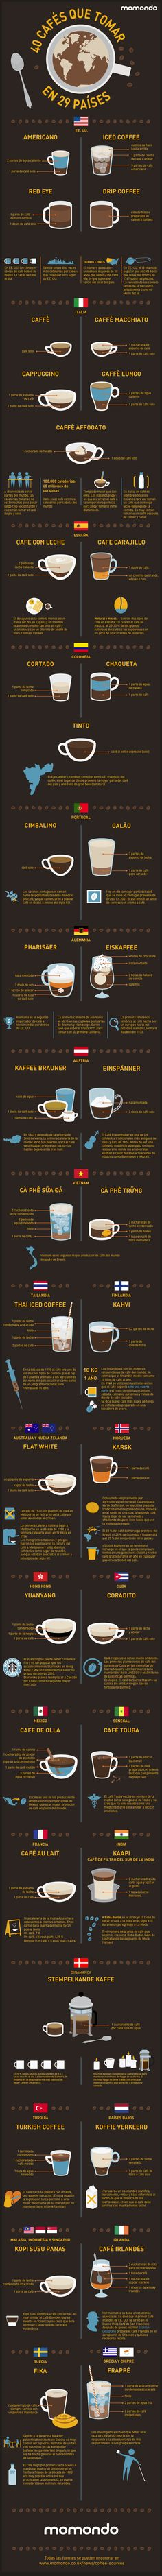 Coffee Tips That Can Work For You! - Useful Coffee Tips and Guide I Love Coffee, Coffee Break, My Coffee, Coffee Cafe, Coffee Drinks, Coffee Shop, Coffee Barista, Coffee Lovers, Chocolate Coffee